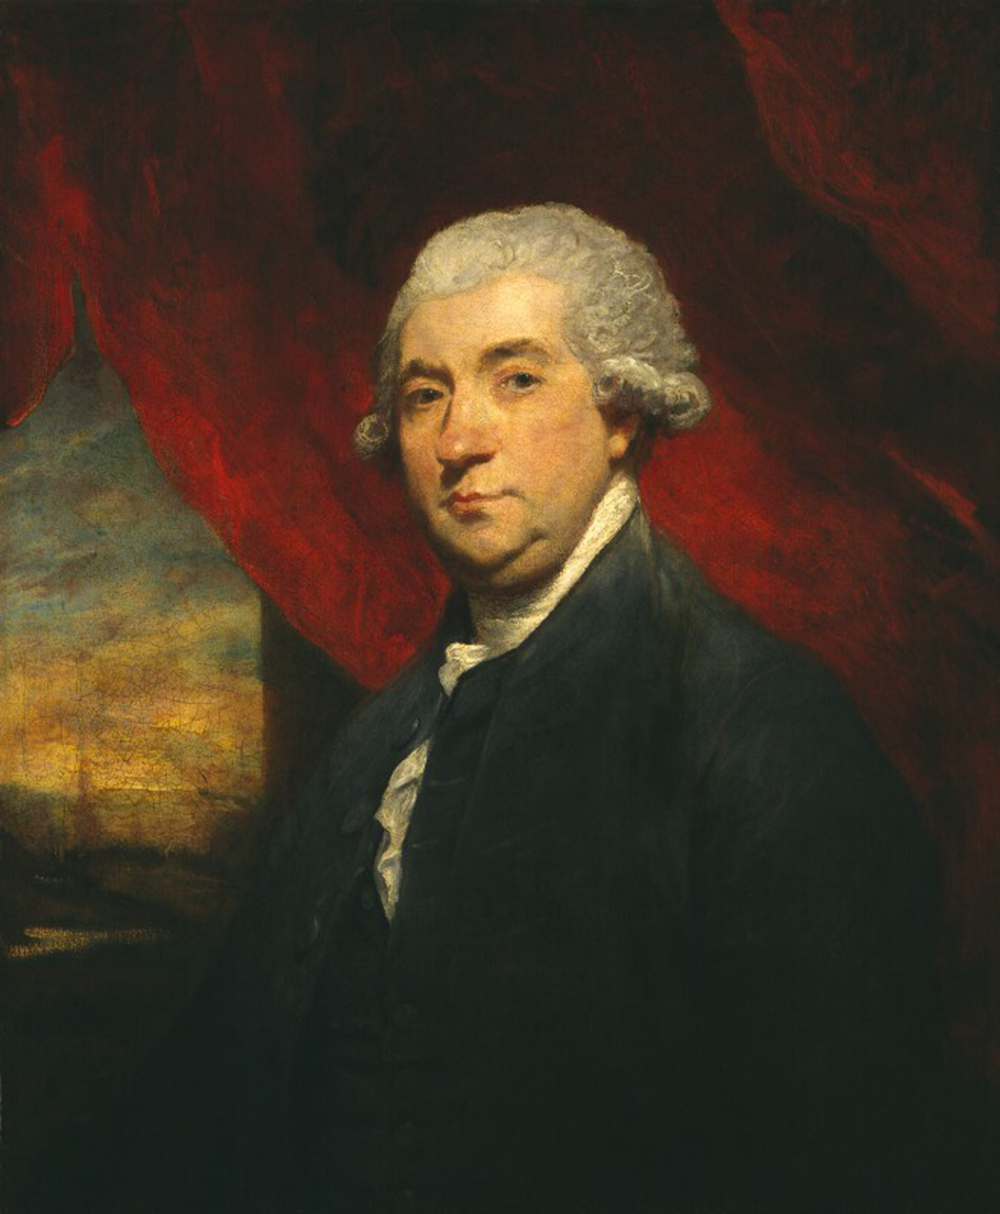 James Boswell, by Joshua Reynolds, 1785. National Portrait Gallery, London.